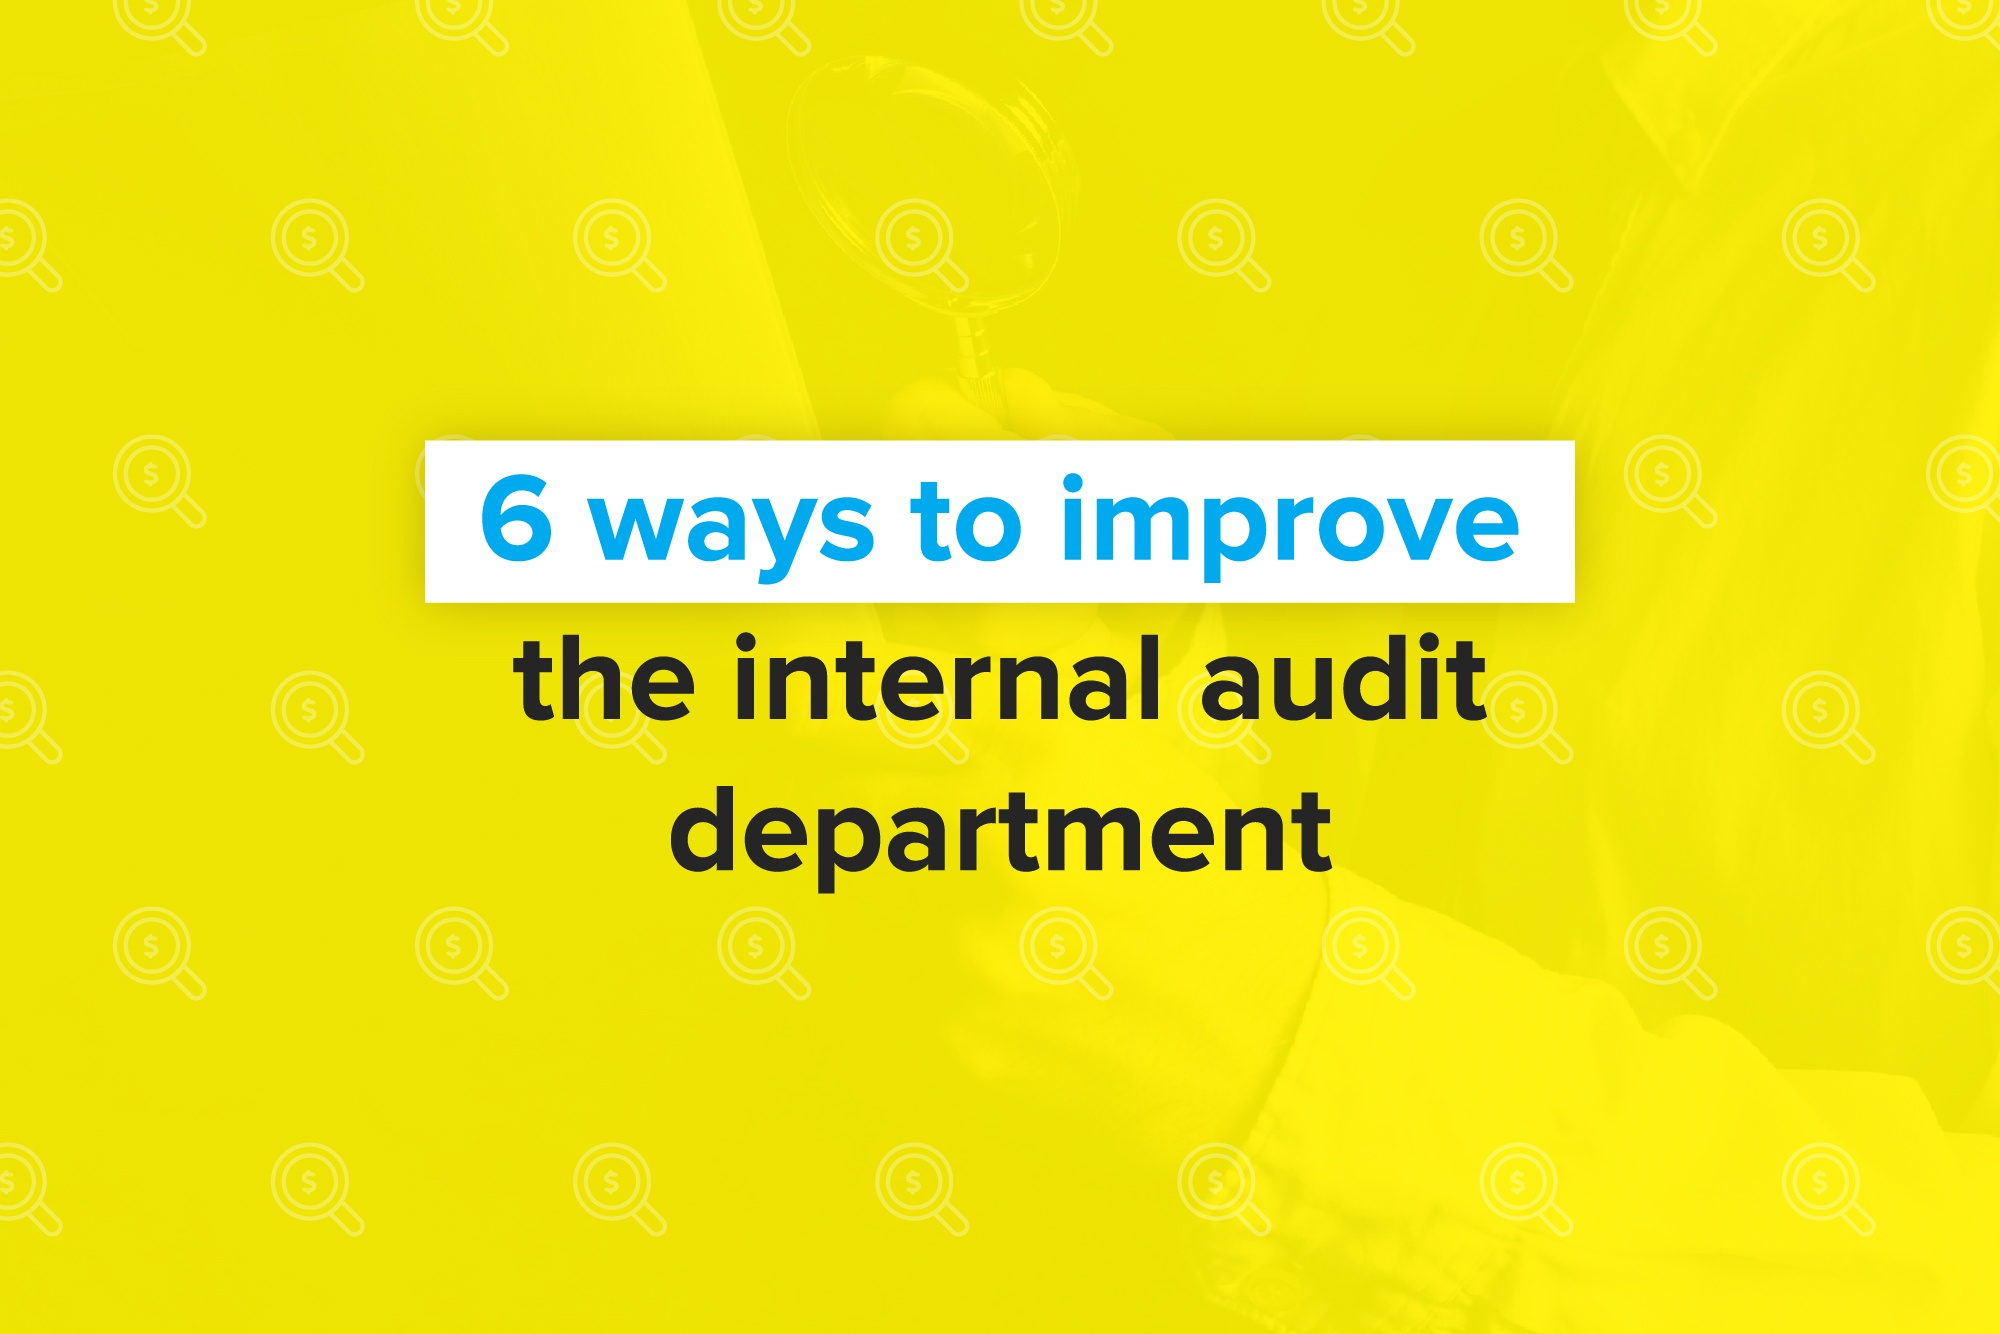 6ways-to-improve-internal-audit.jpg